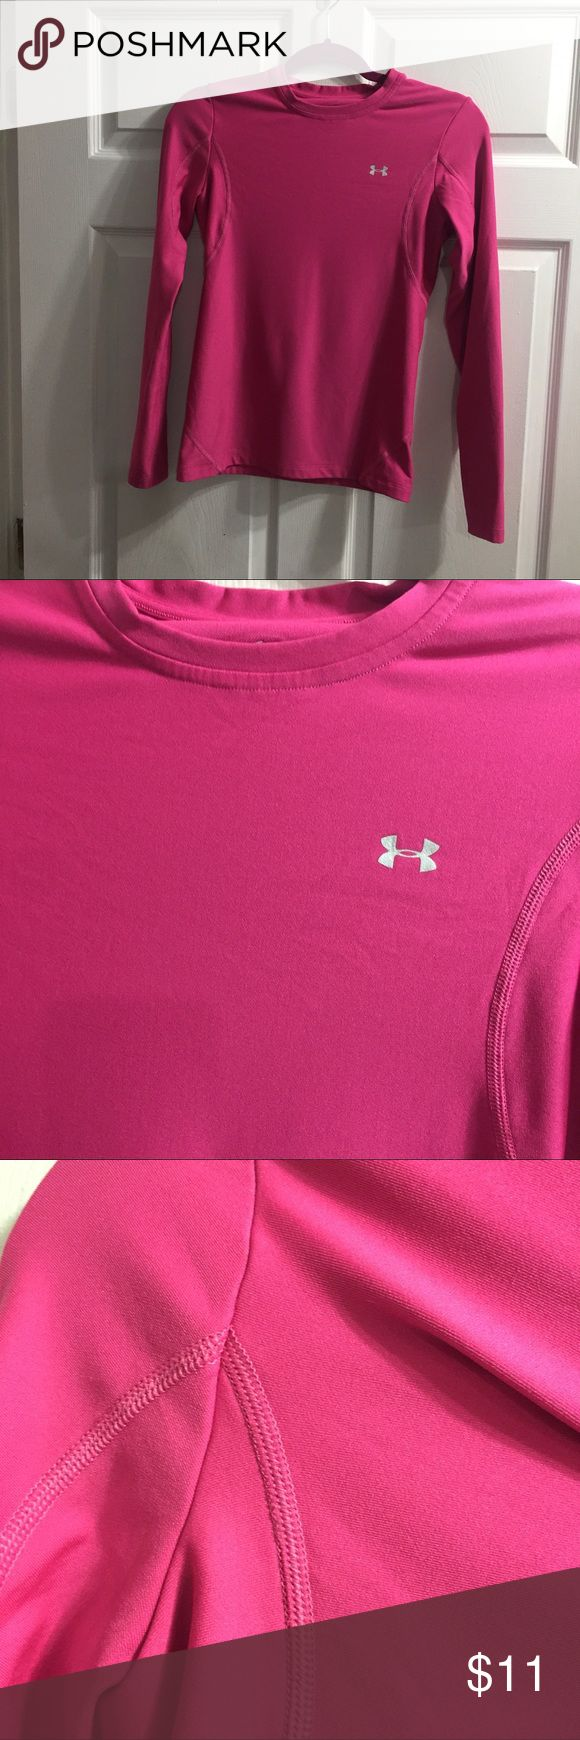 Under Armour pink long sleeve top In excellent condition no flaws Under Armour Tops